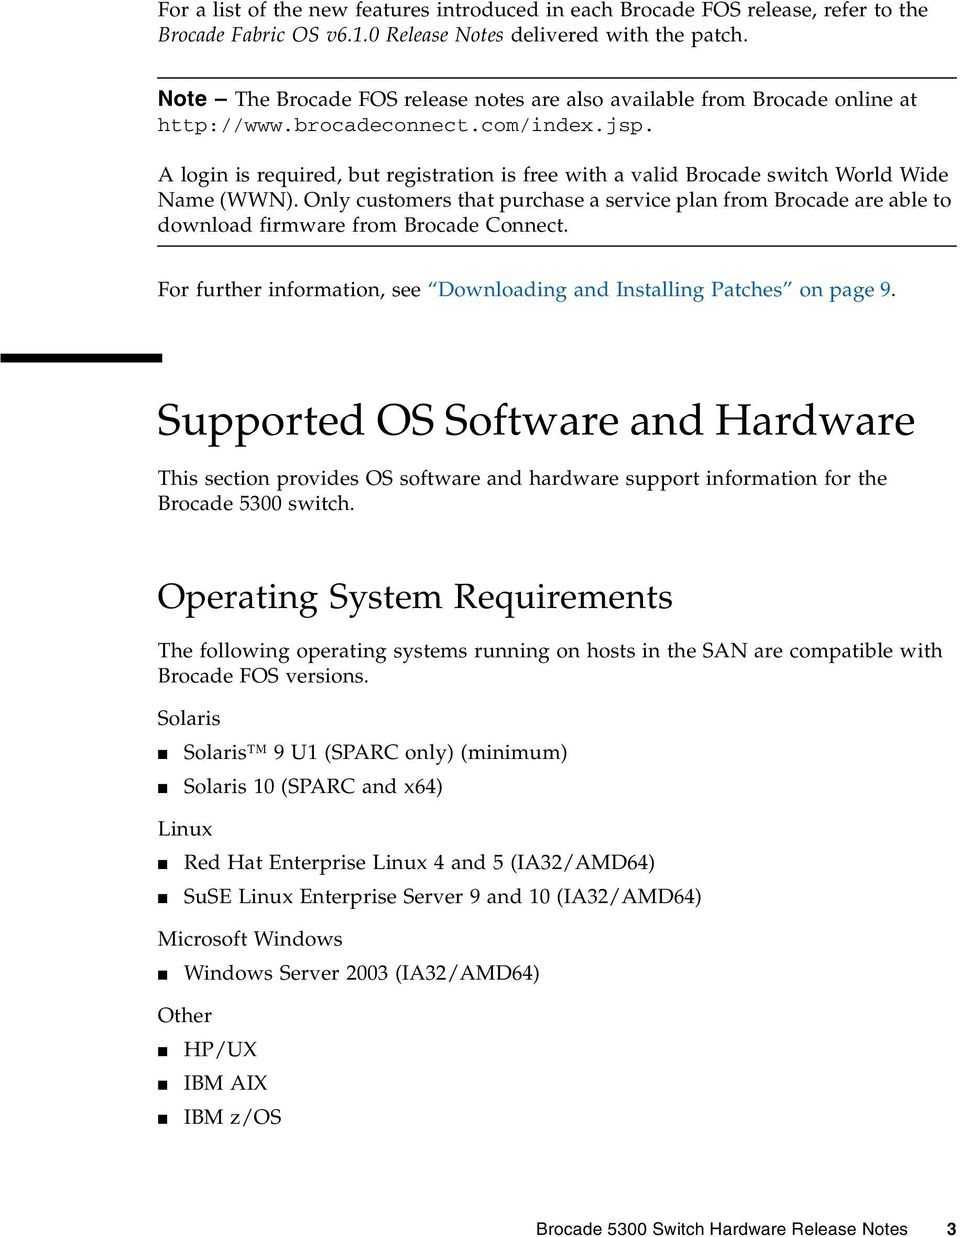 Brocade 5300 Switch Hardware Release Notes - PDF